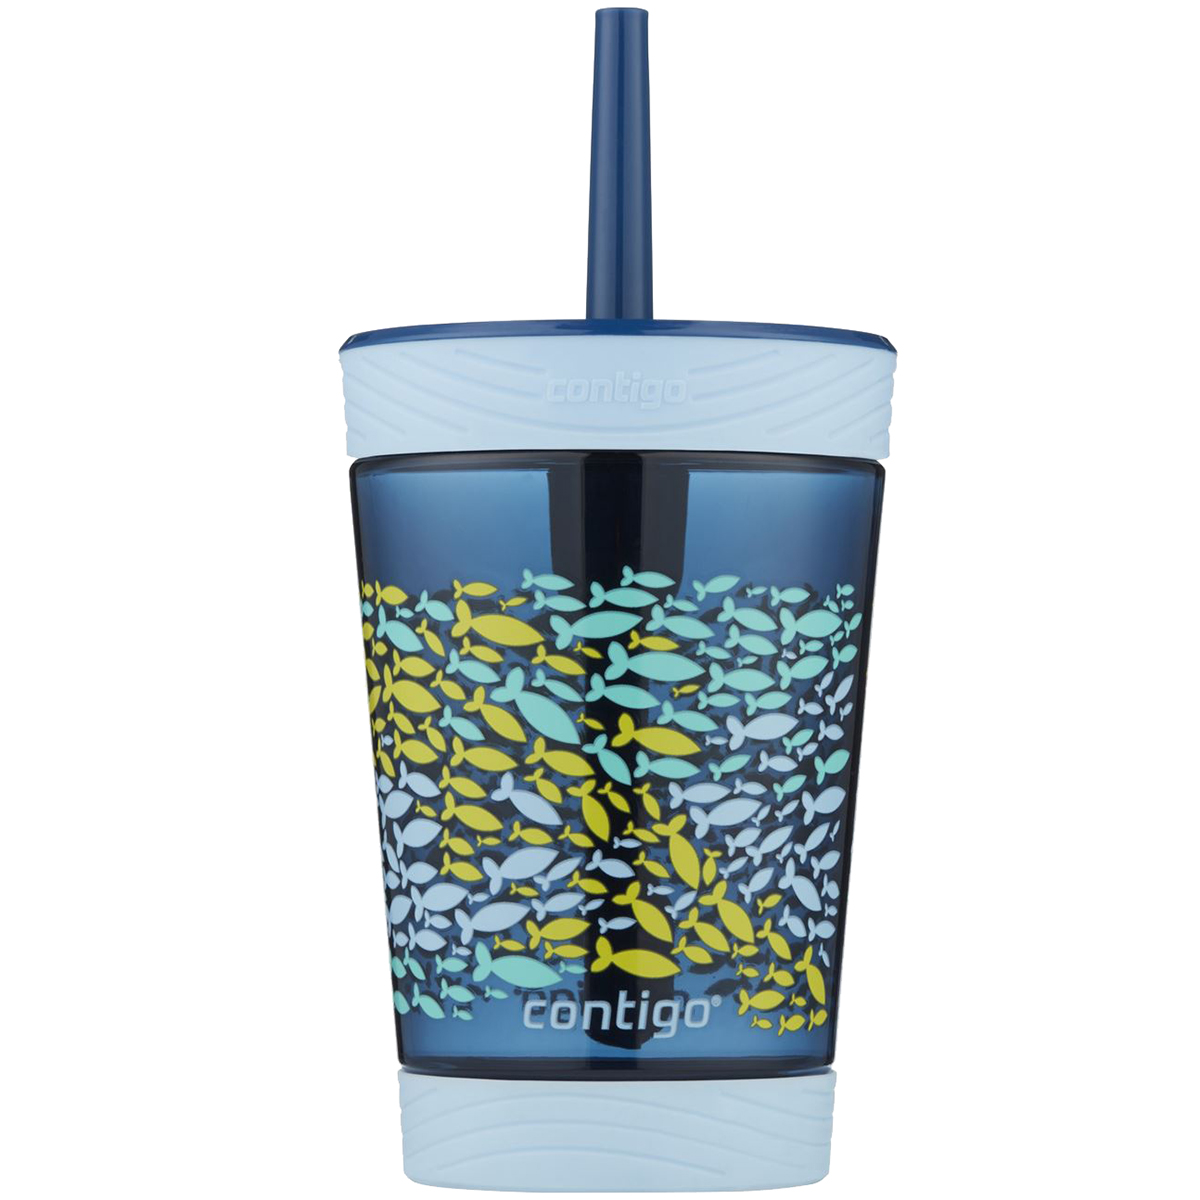 Contigo-14-oz-Kid-039-s-Spill-Proof-Sippy-Cup-Tumbler-with-Straw thumbnail 8